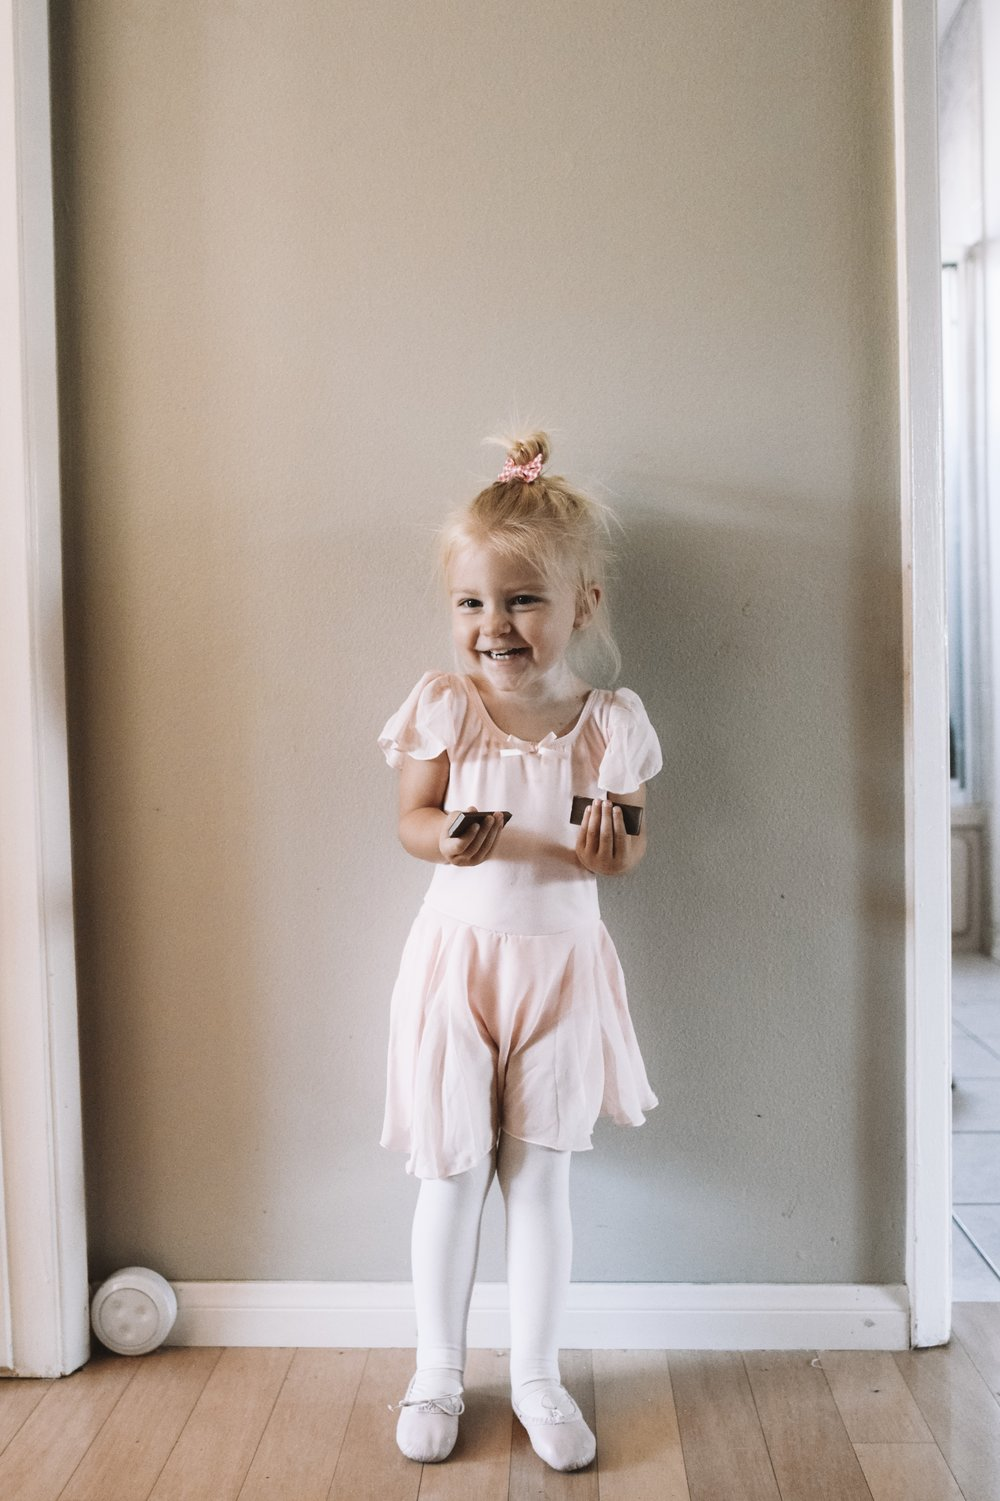 Baby-Toddler Ballet Outfits-Clothes-Leotards-Ballet Shoes -- The Overwhelmed Mommy Blogger